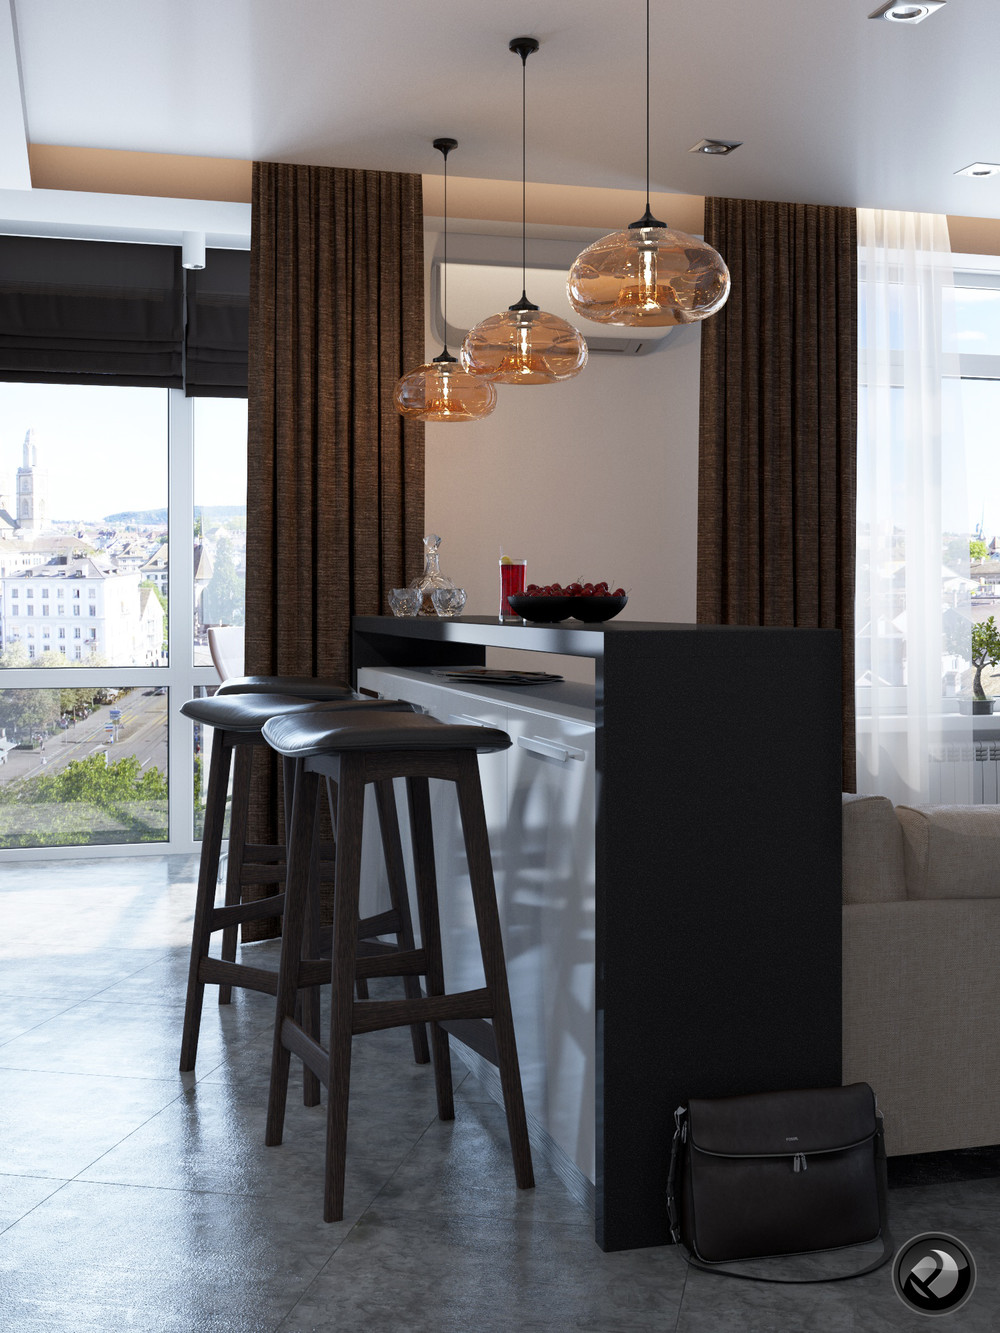 Leather Barstools - 5 apartment designs under 500 square feet